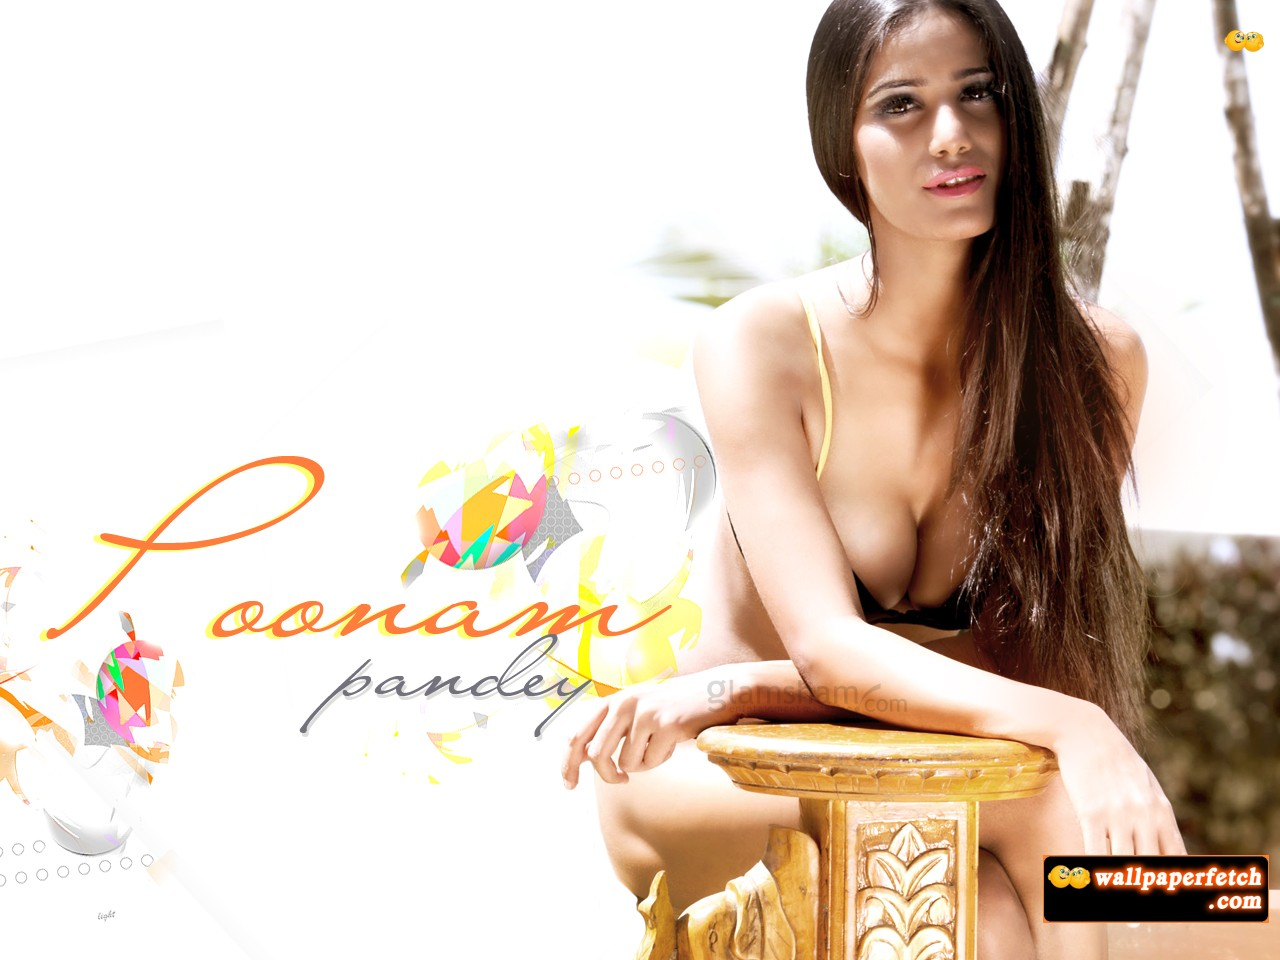 Wallpaper Fetch: Poonam Pandey Sexy Wallpapers